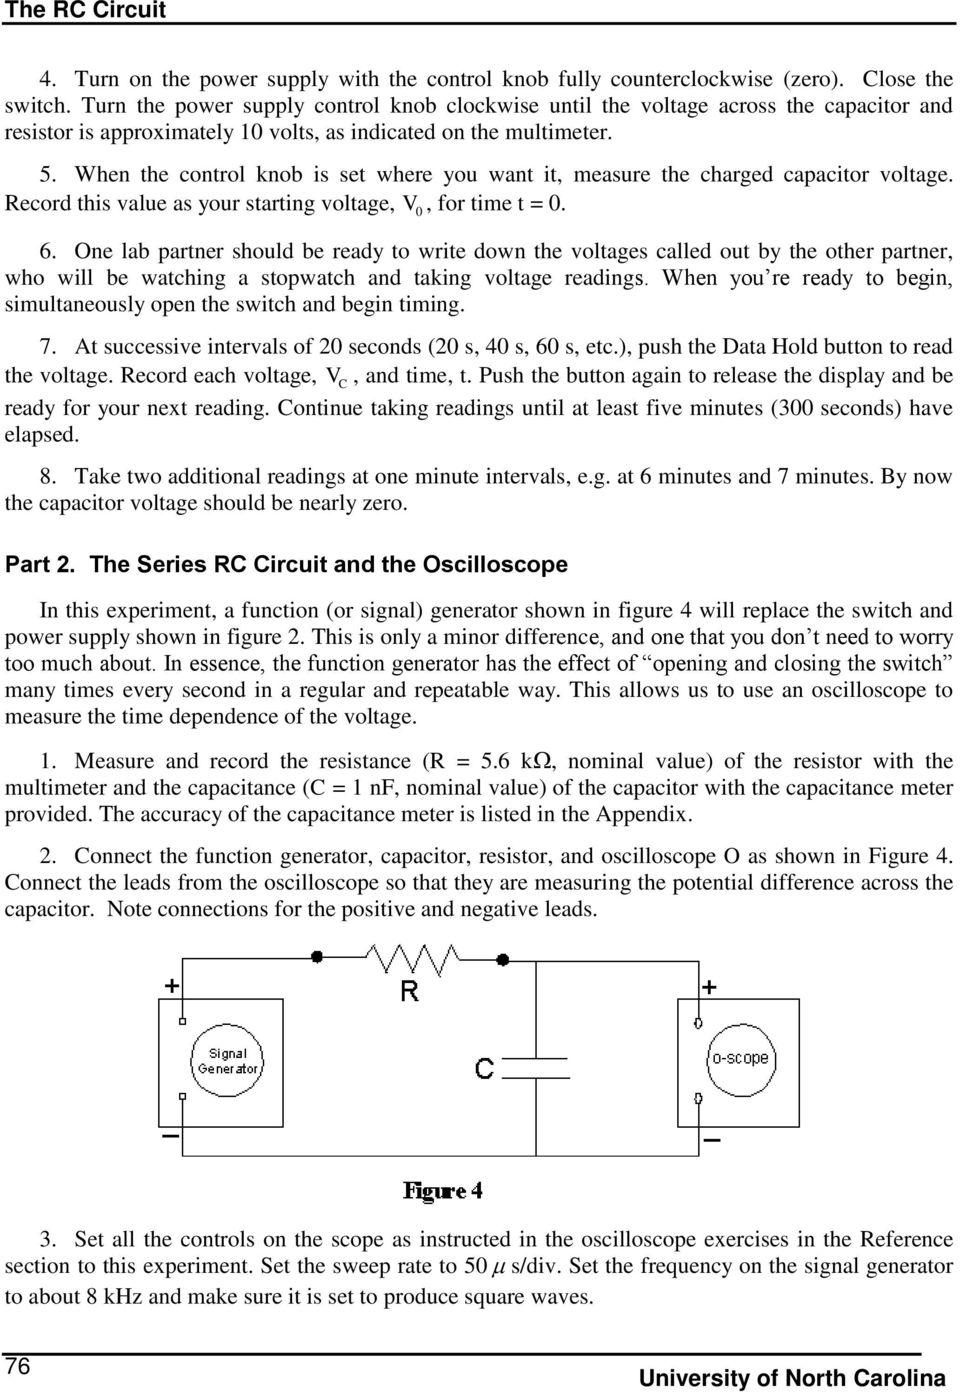 The Rc Circuit Pre Lab Questions Introduction Pdf As Shown In Fig This Can Be A Voltage Signal When Control Knob Is Set Where You Want It Measure Charged Capacitor